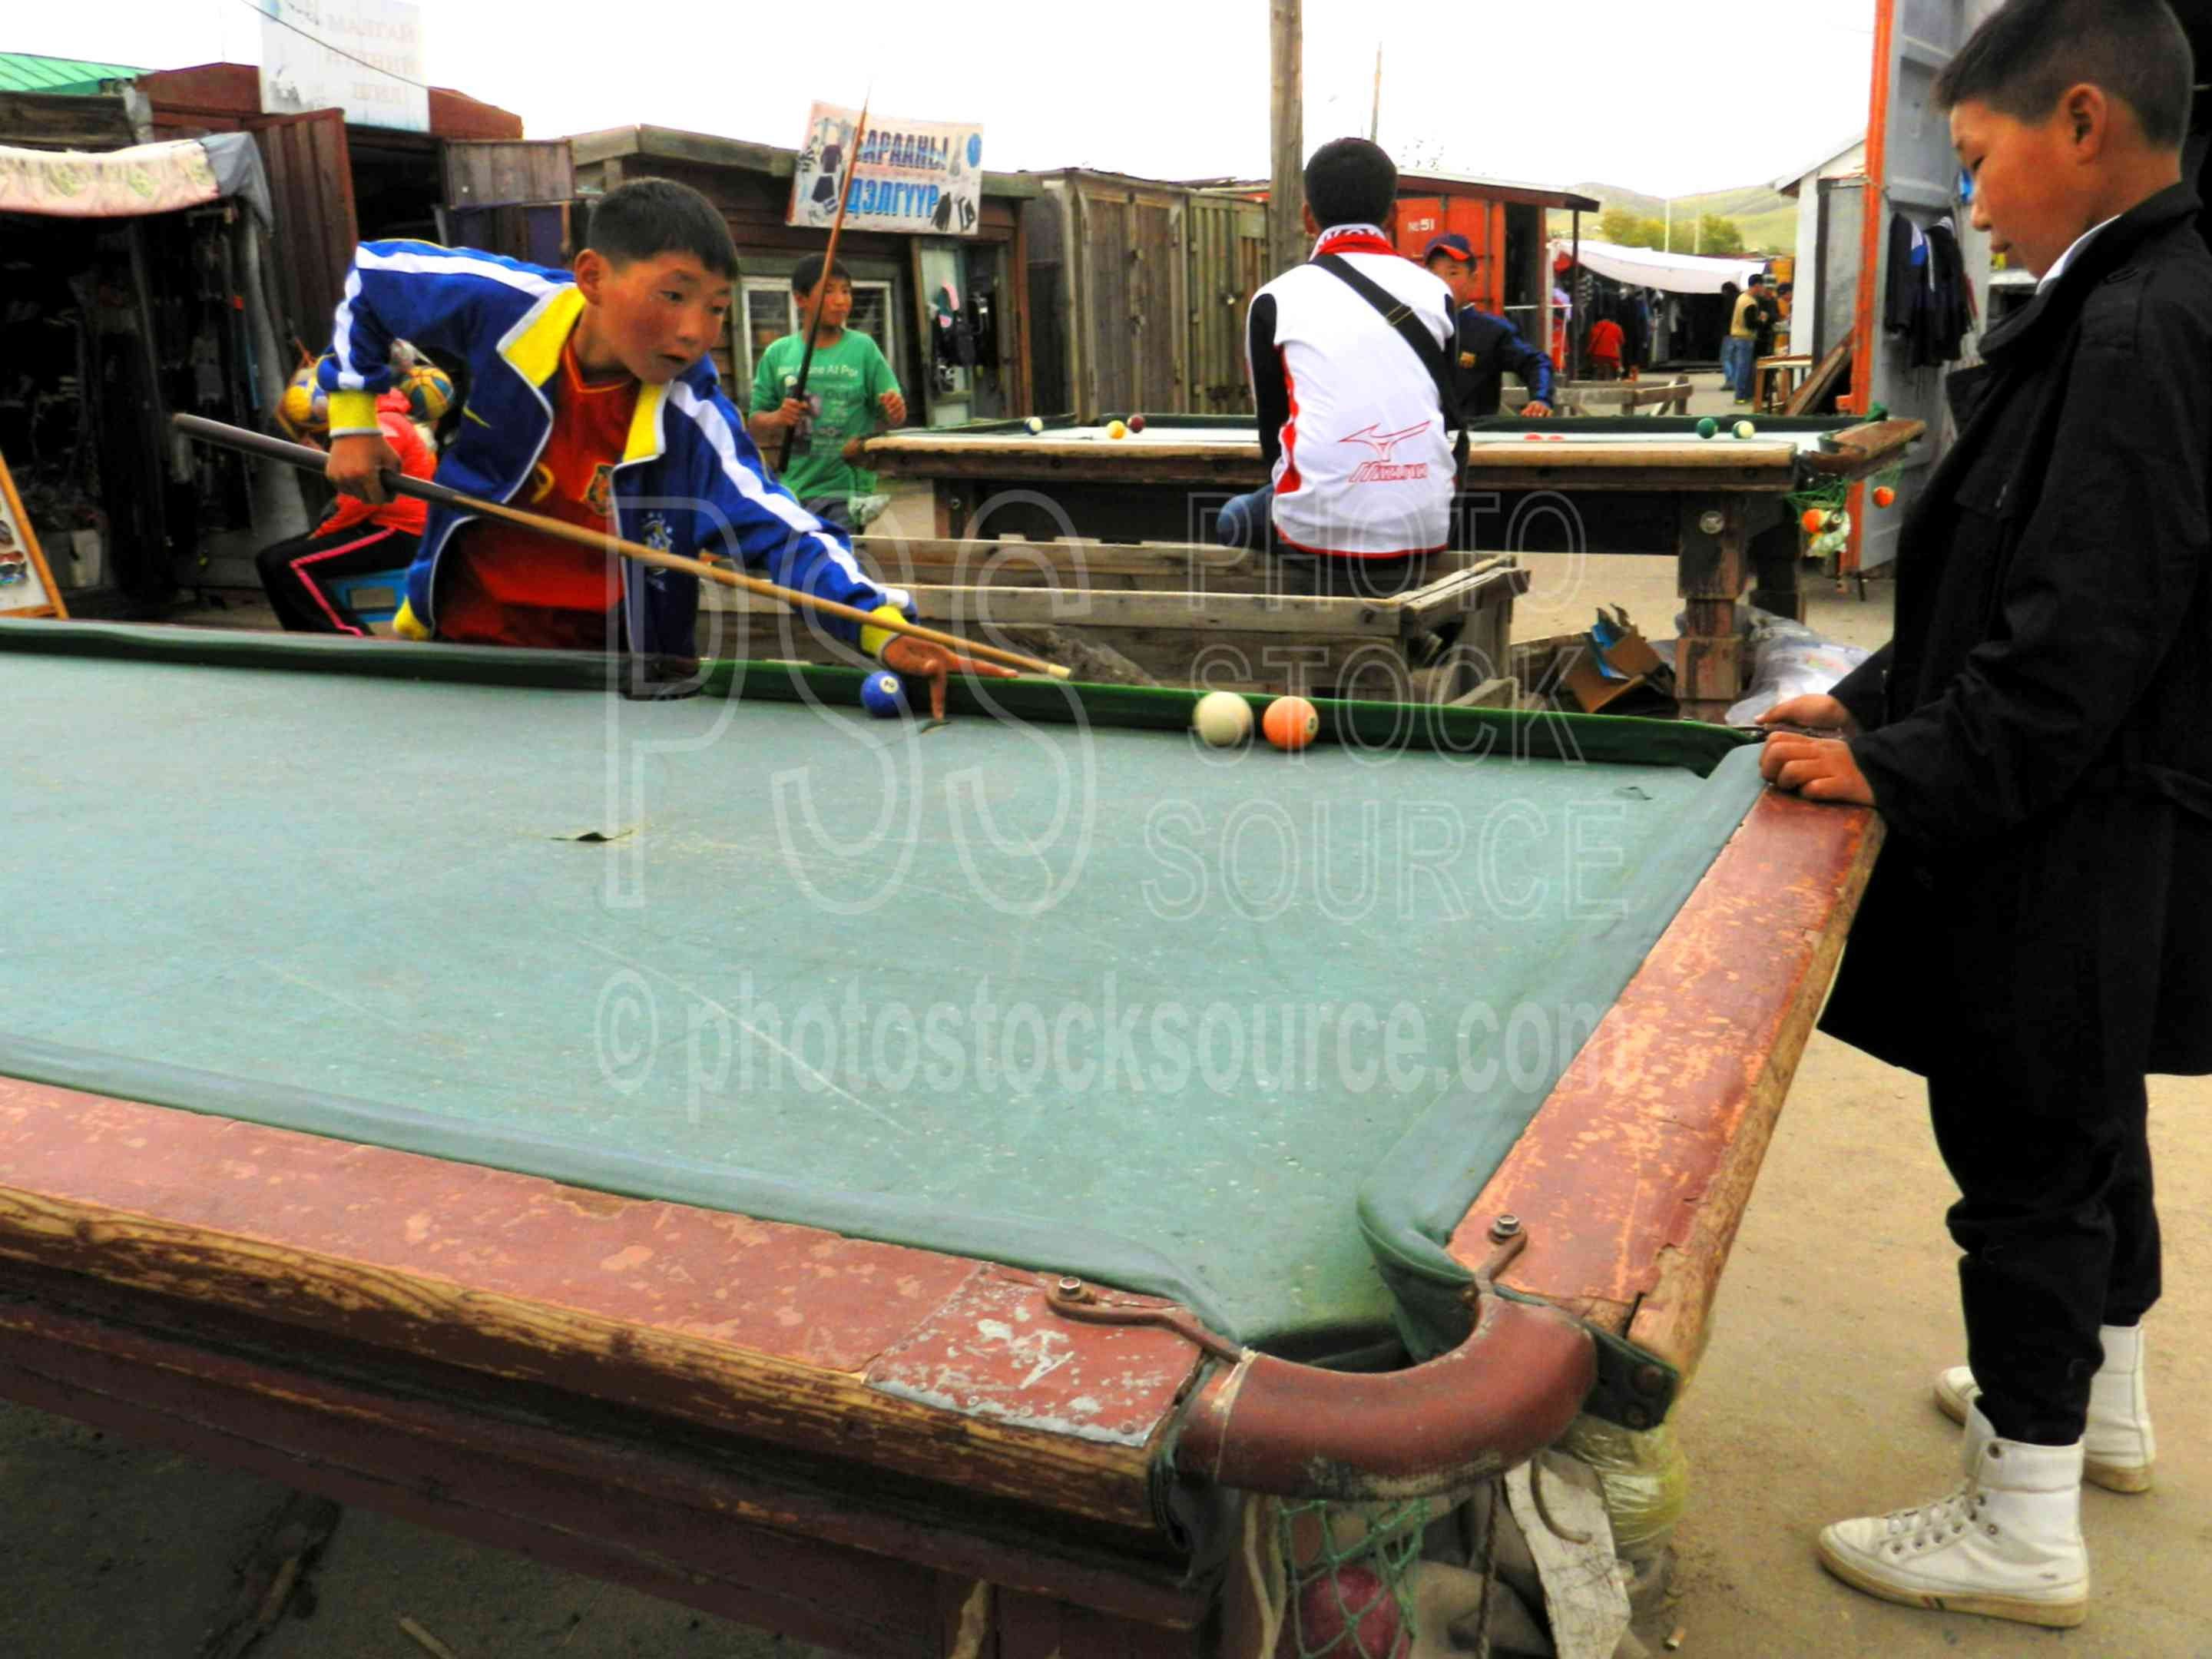 Boys Playing Pool,pool,table,market,goods,shopping,consumers,buy,sell,sales